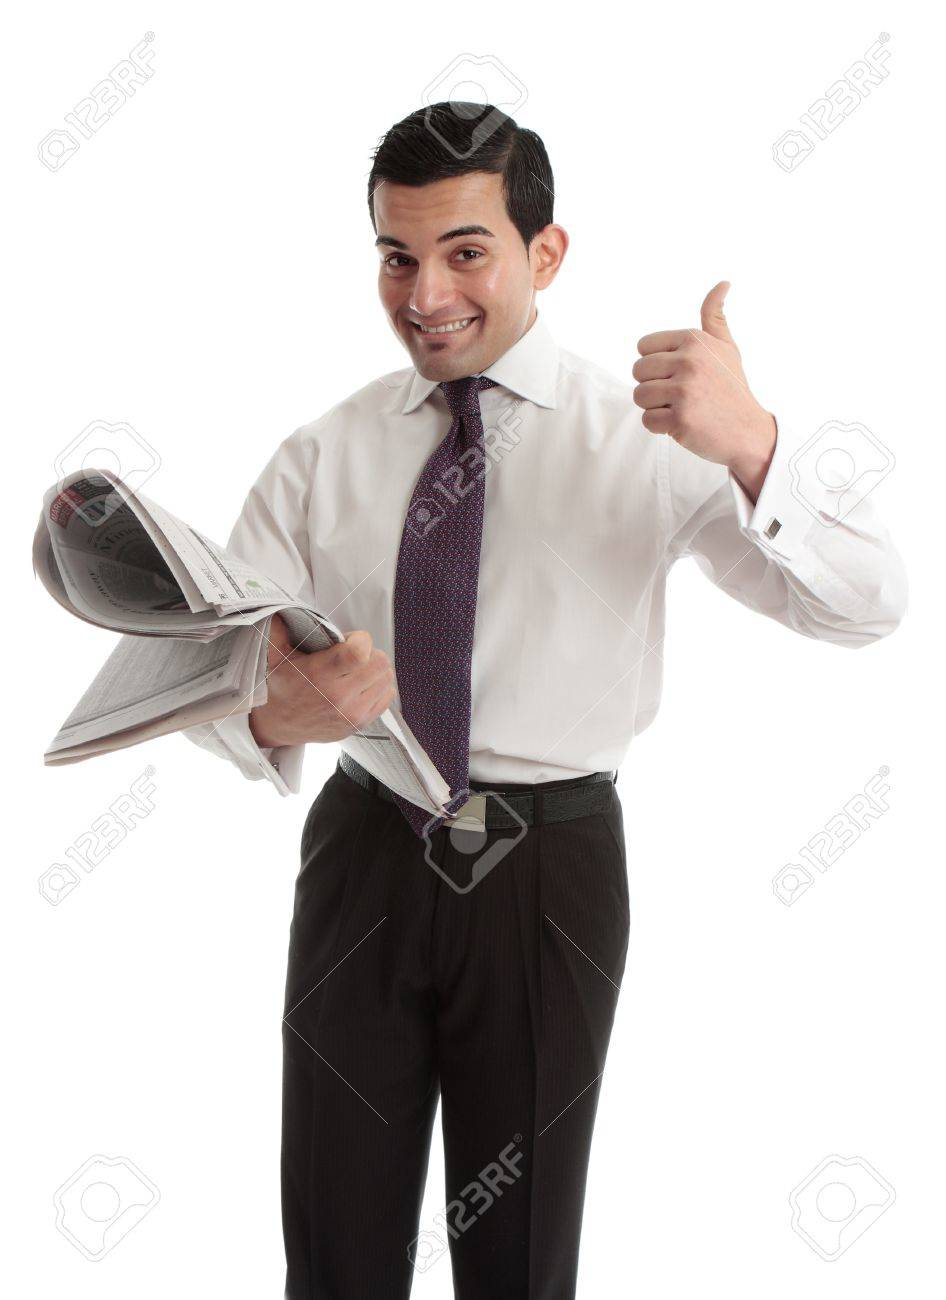 A businessman, investor or stockbroker with the financial newspaper and showing a thumbs up hand sign Stock Photo - 14006842